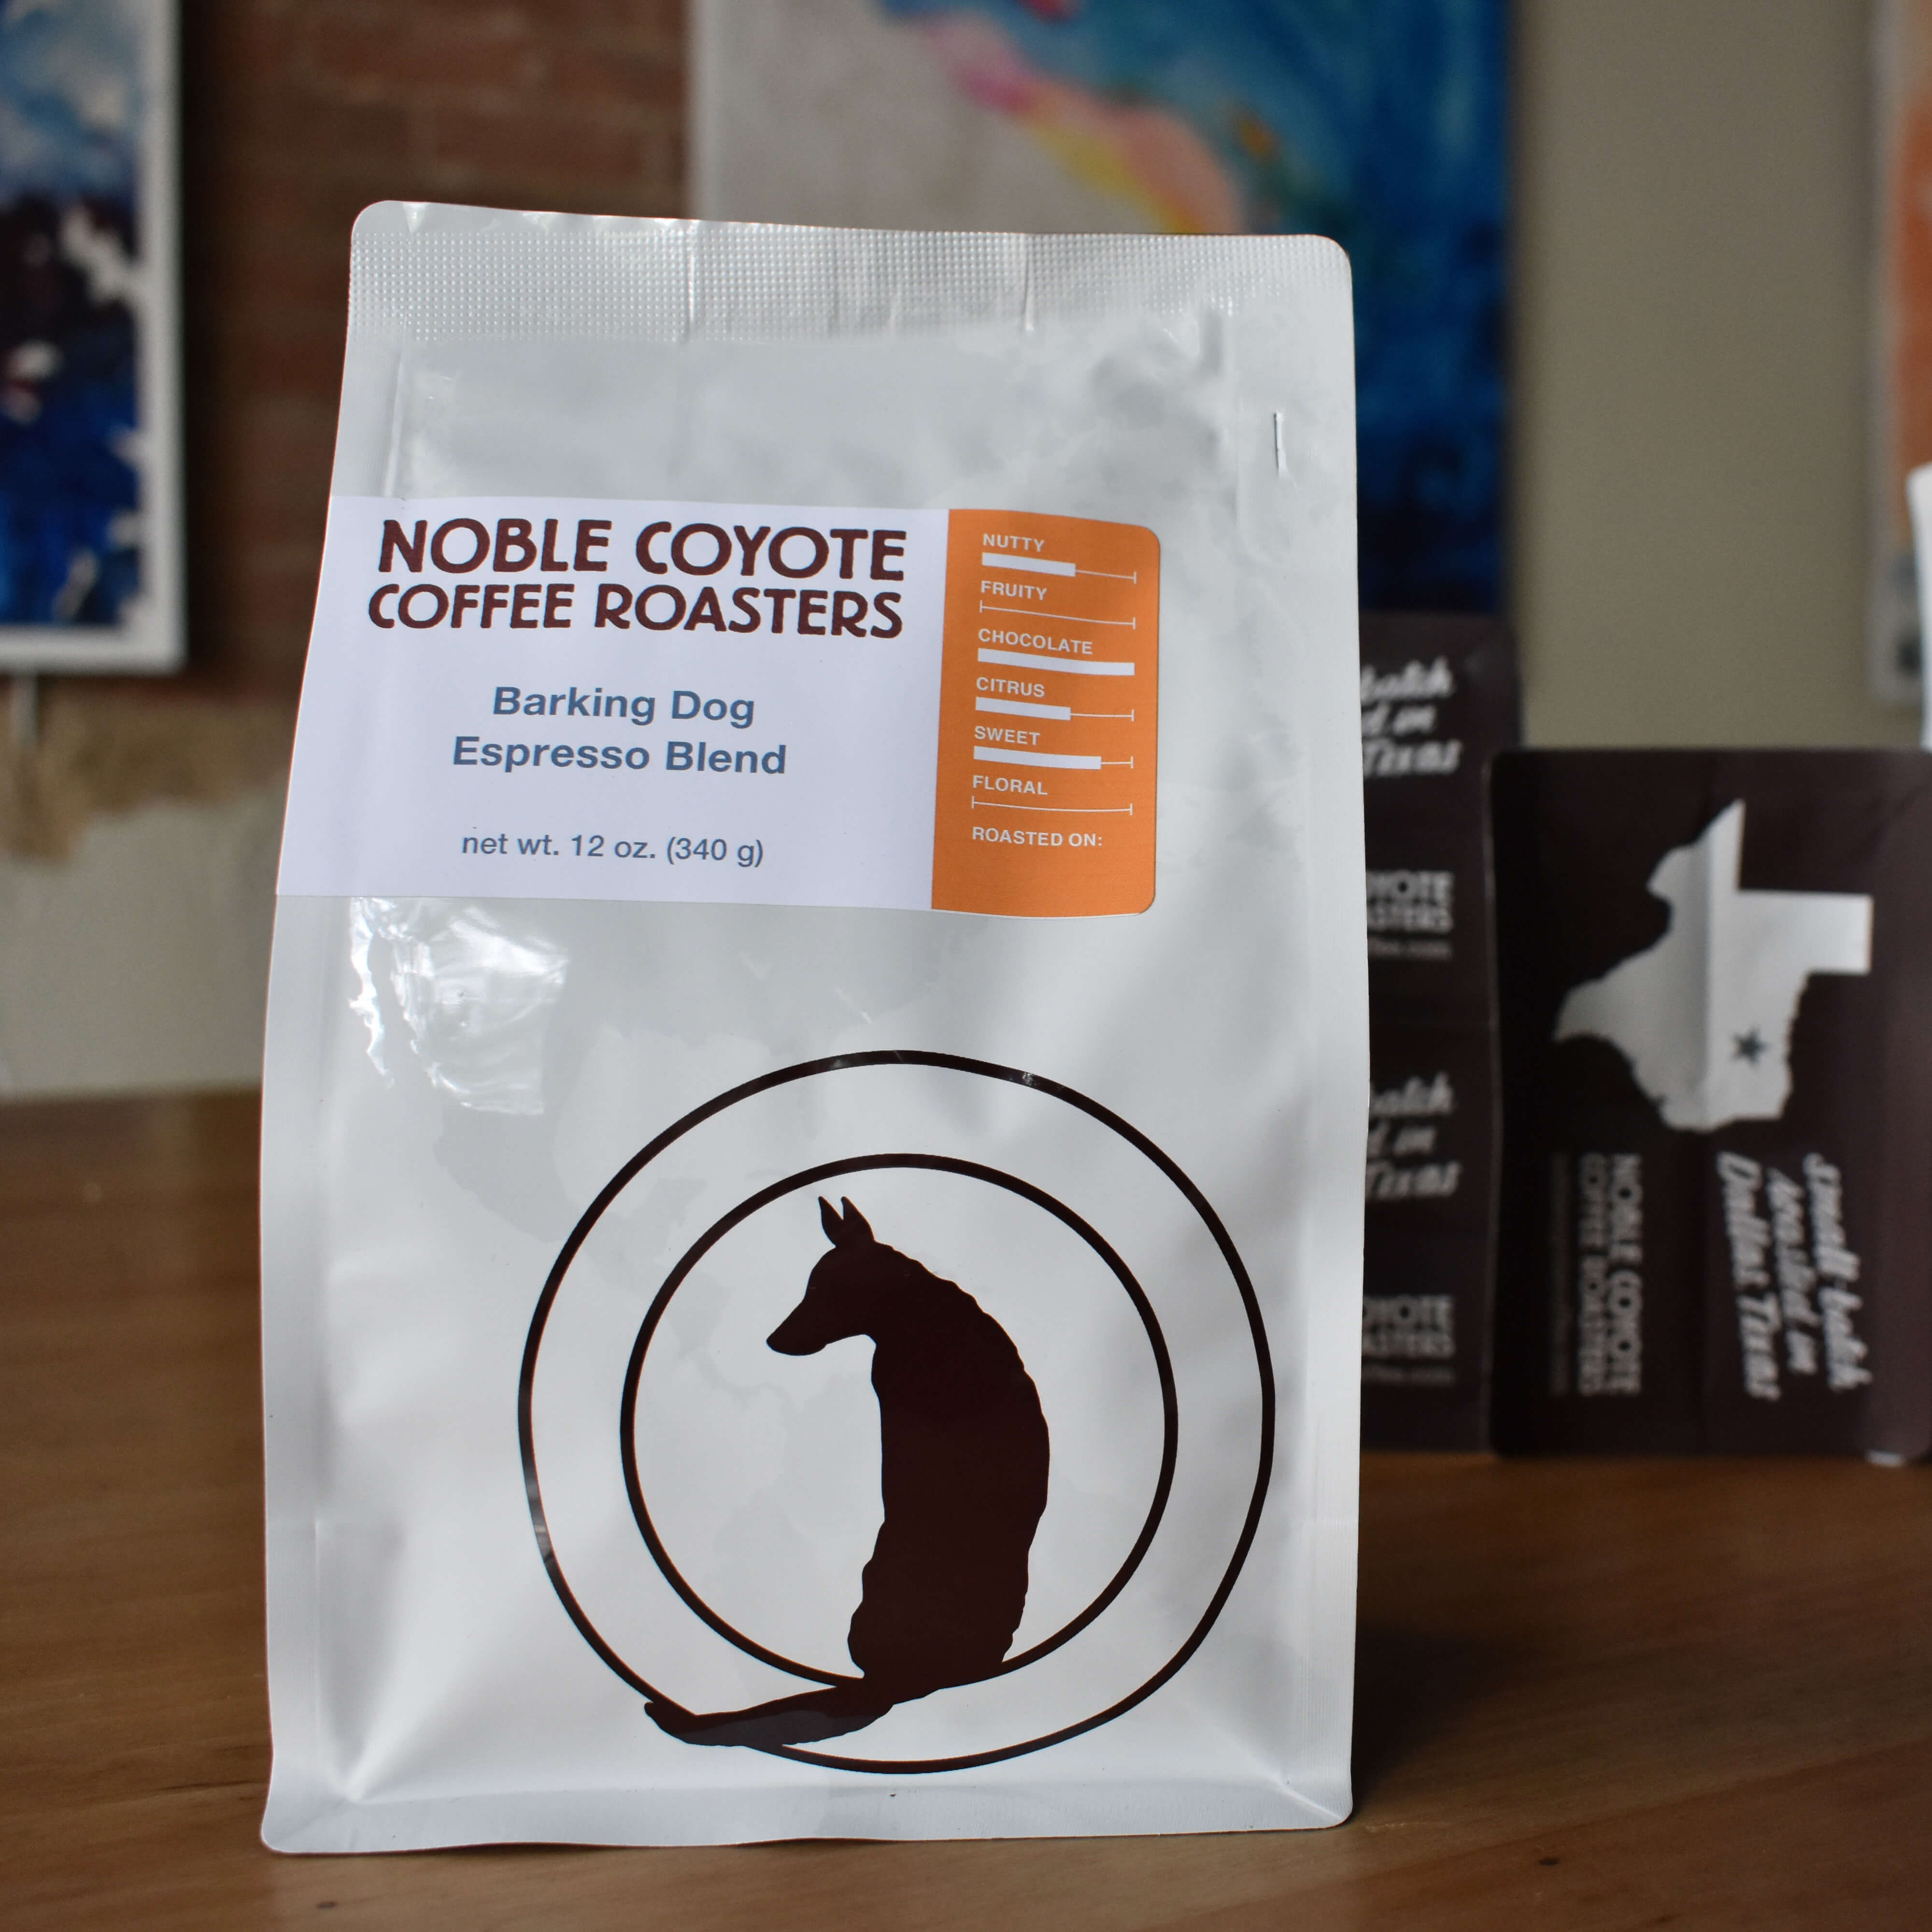 Barking Dog Espresso Blend from Noble Coyote Coffee Roasters